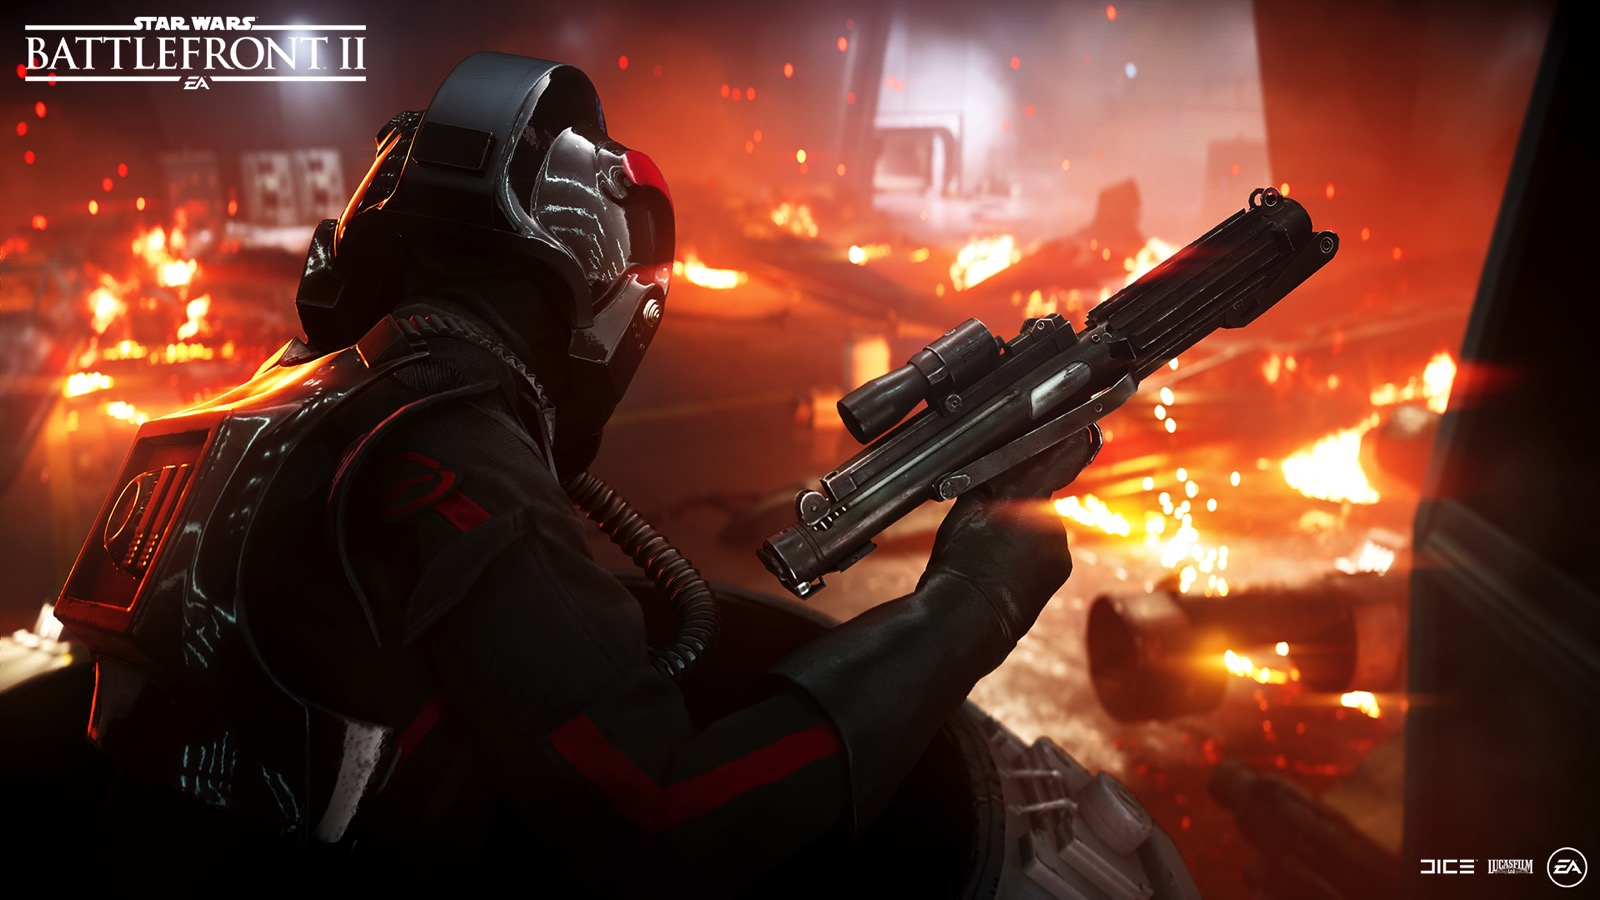 EA patches 'Star Wars Battlefront II' to address technical issues